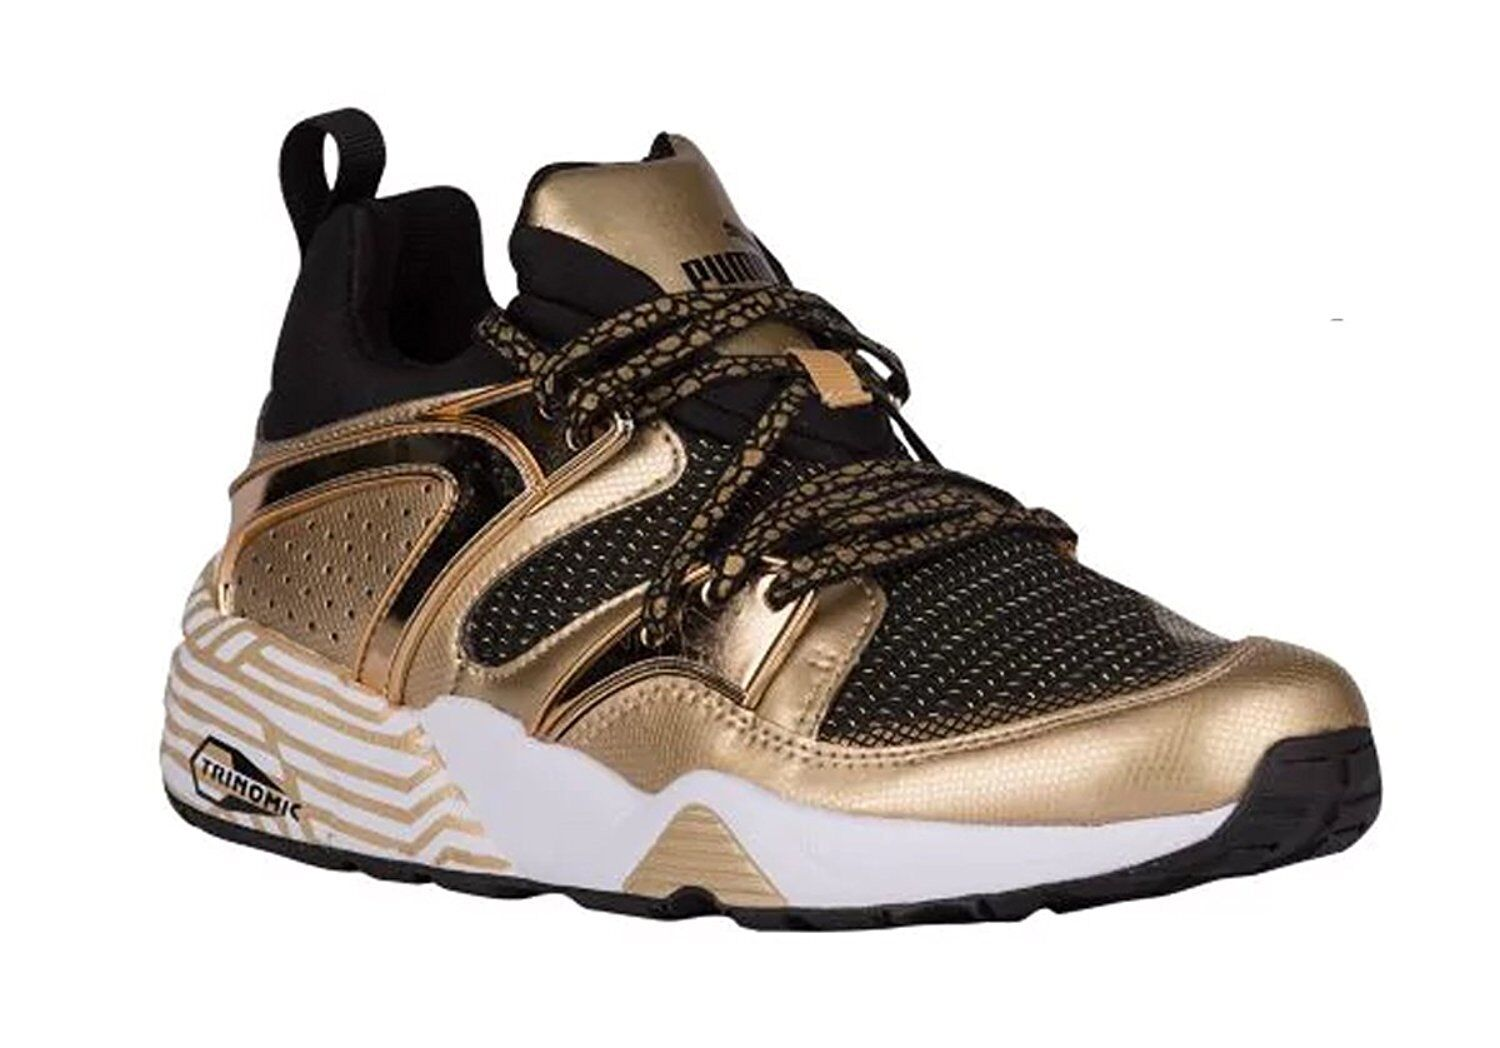 PUMA Women's Blaze Of Glory Metallic shoes